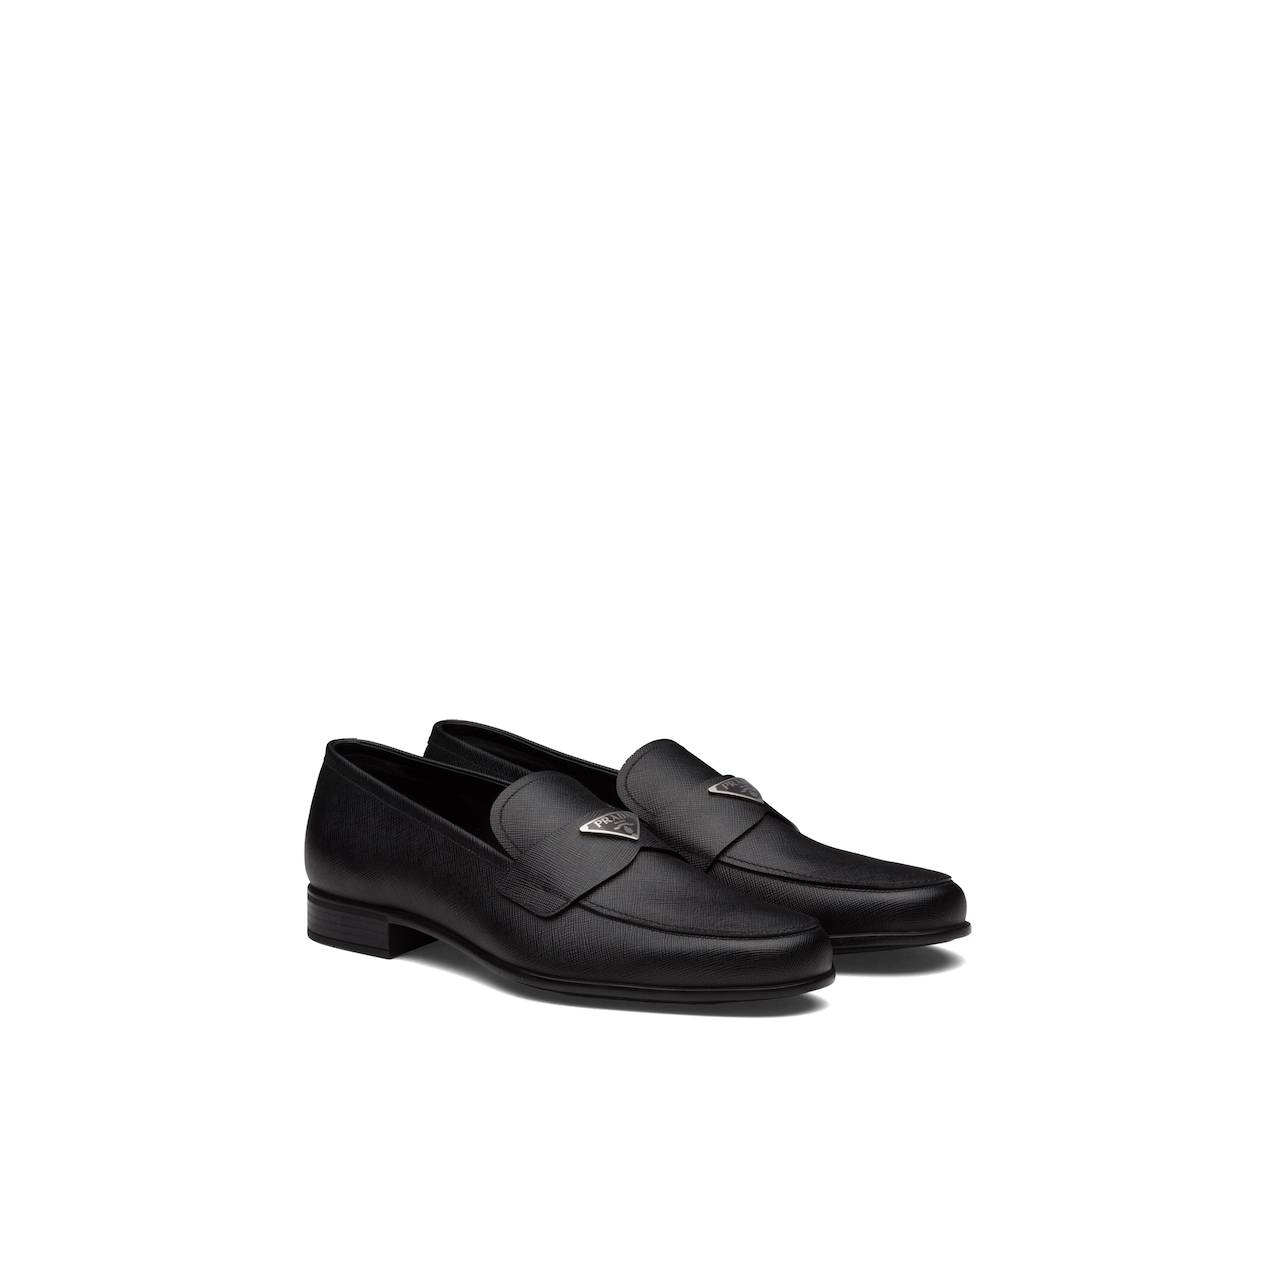 Prada Saffiano leather loafers 1